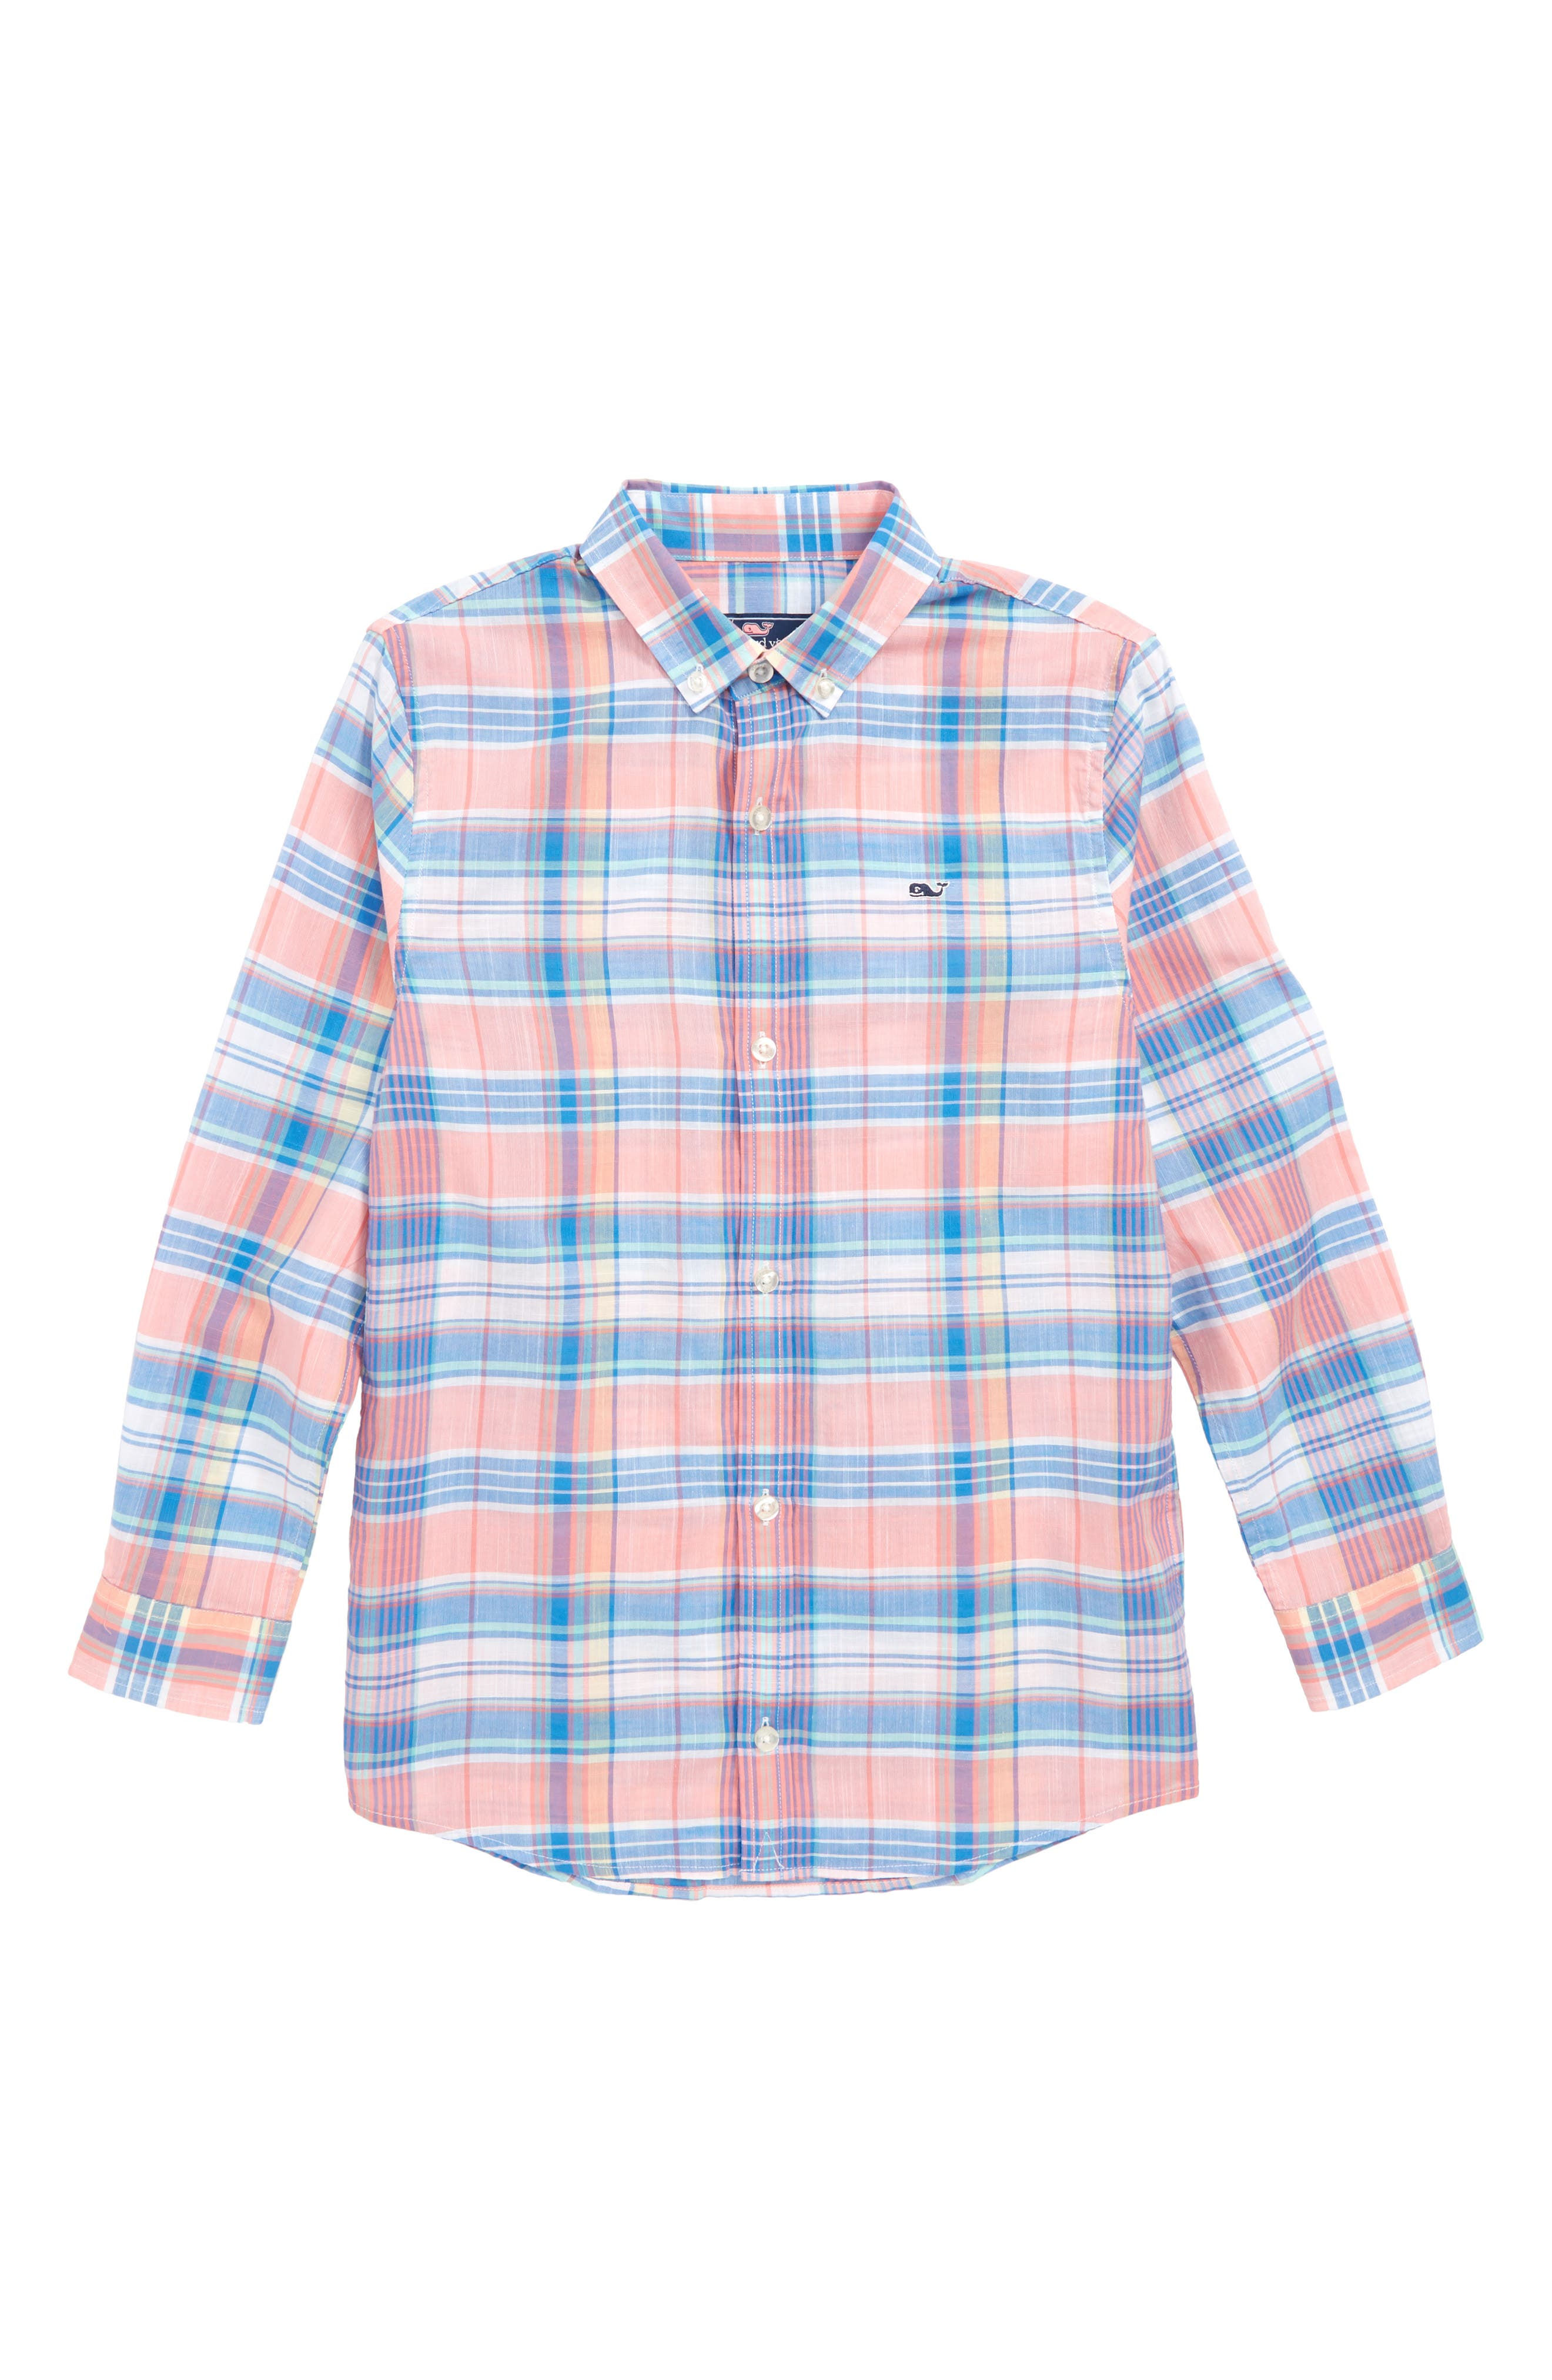 VINEYARD VINES,                             Smith Point Plaid Whale Shirt,                             Main thumbnail 1, color,                             681